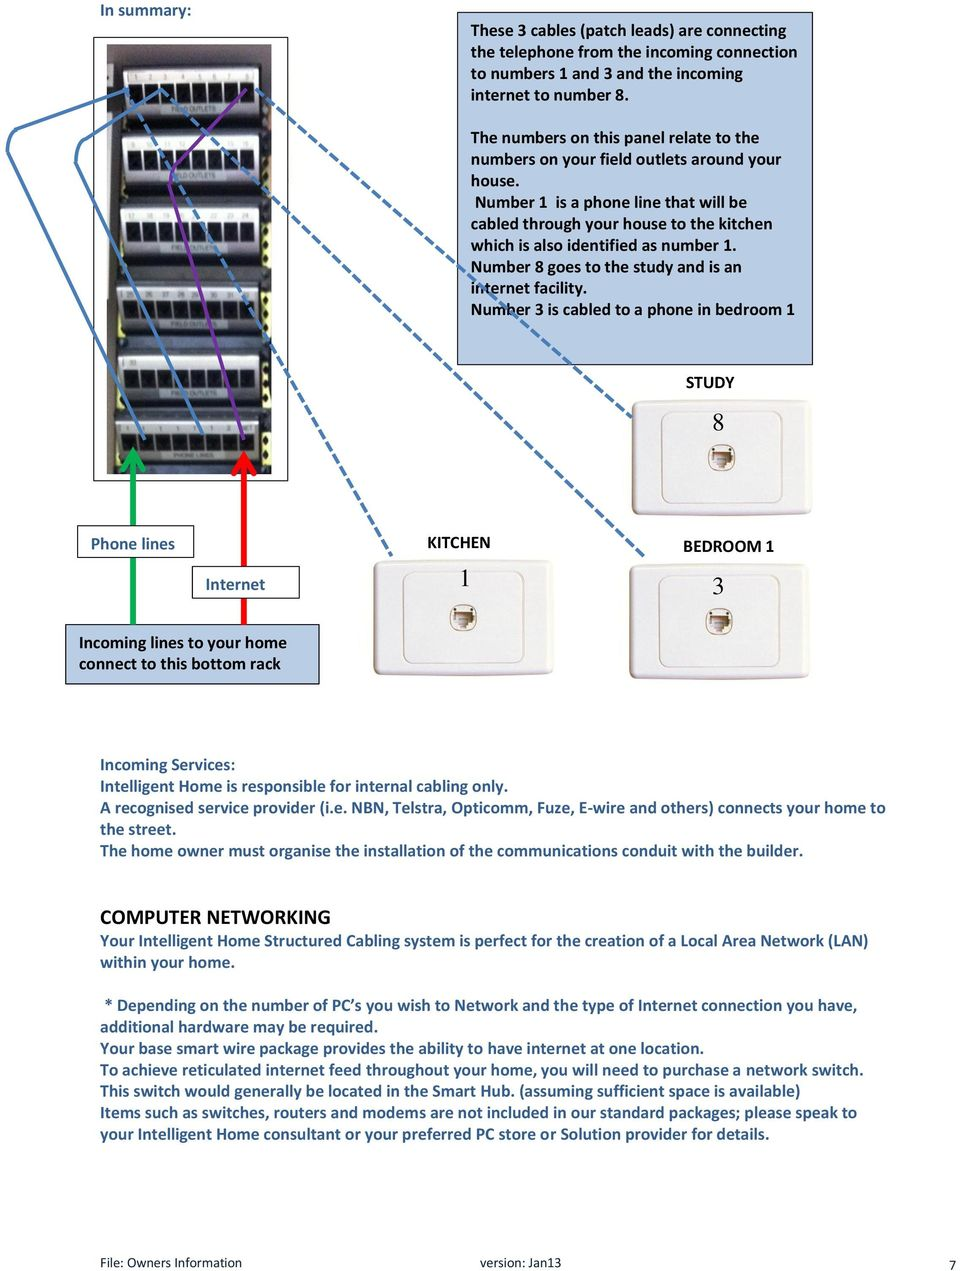 Owners Manual Contents Introduction 2 Definitions Smartwire Wiring Diagram Home Computer Network Number 1 Is A Phone Line That Will Be Cabled Through Your House To The Kitchen